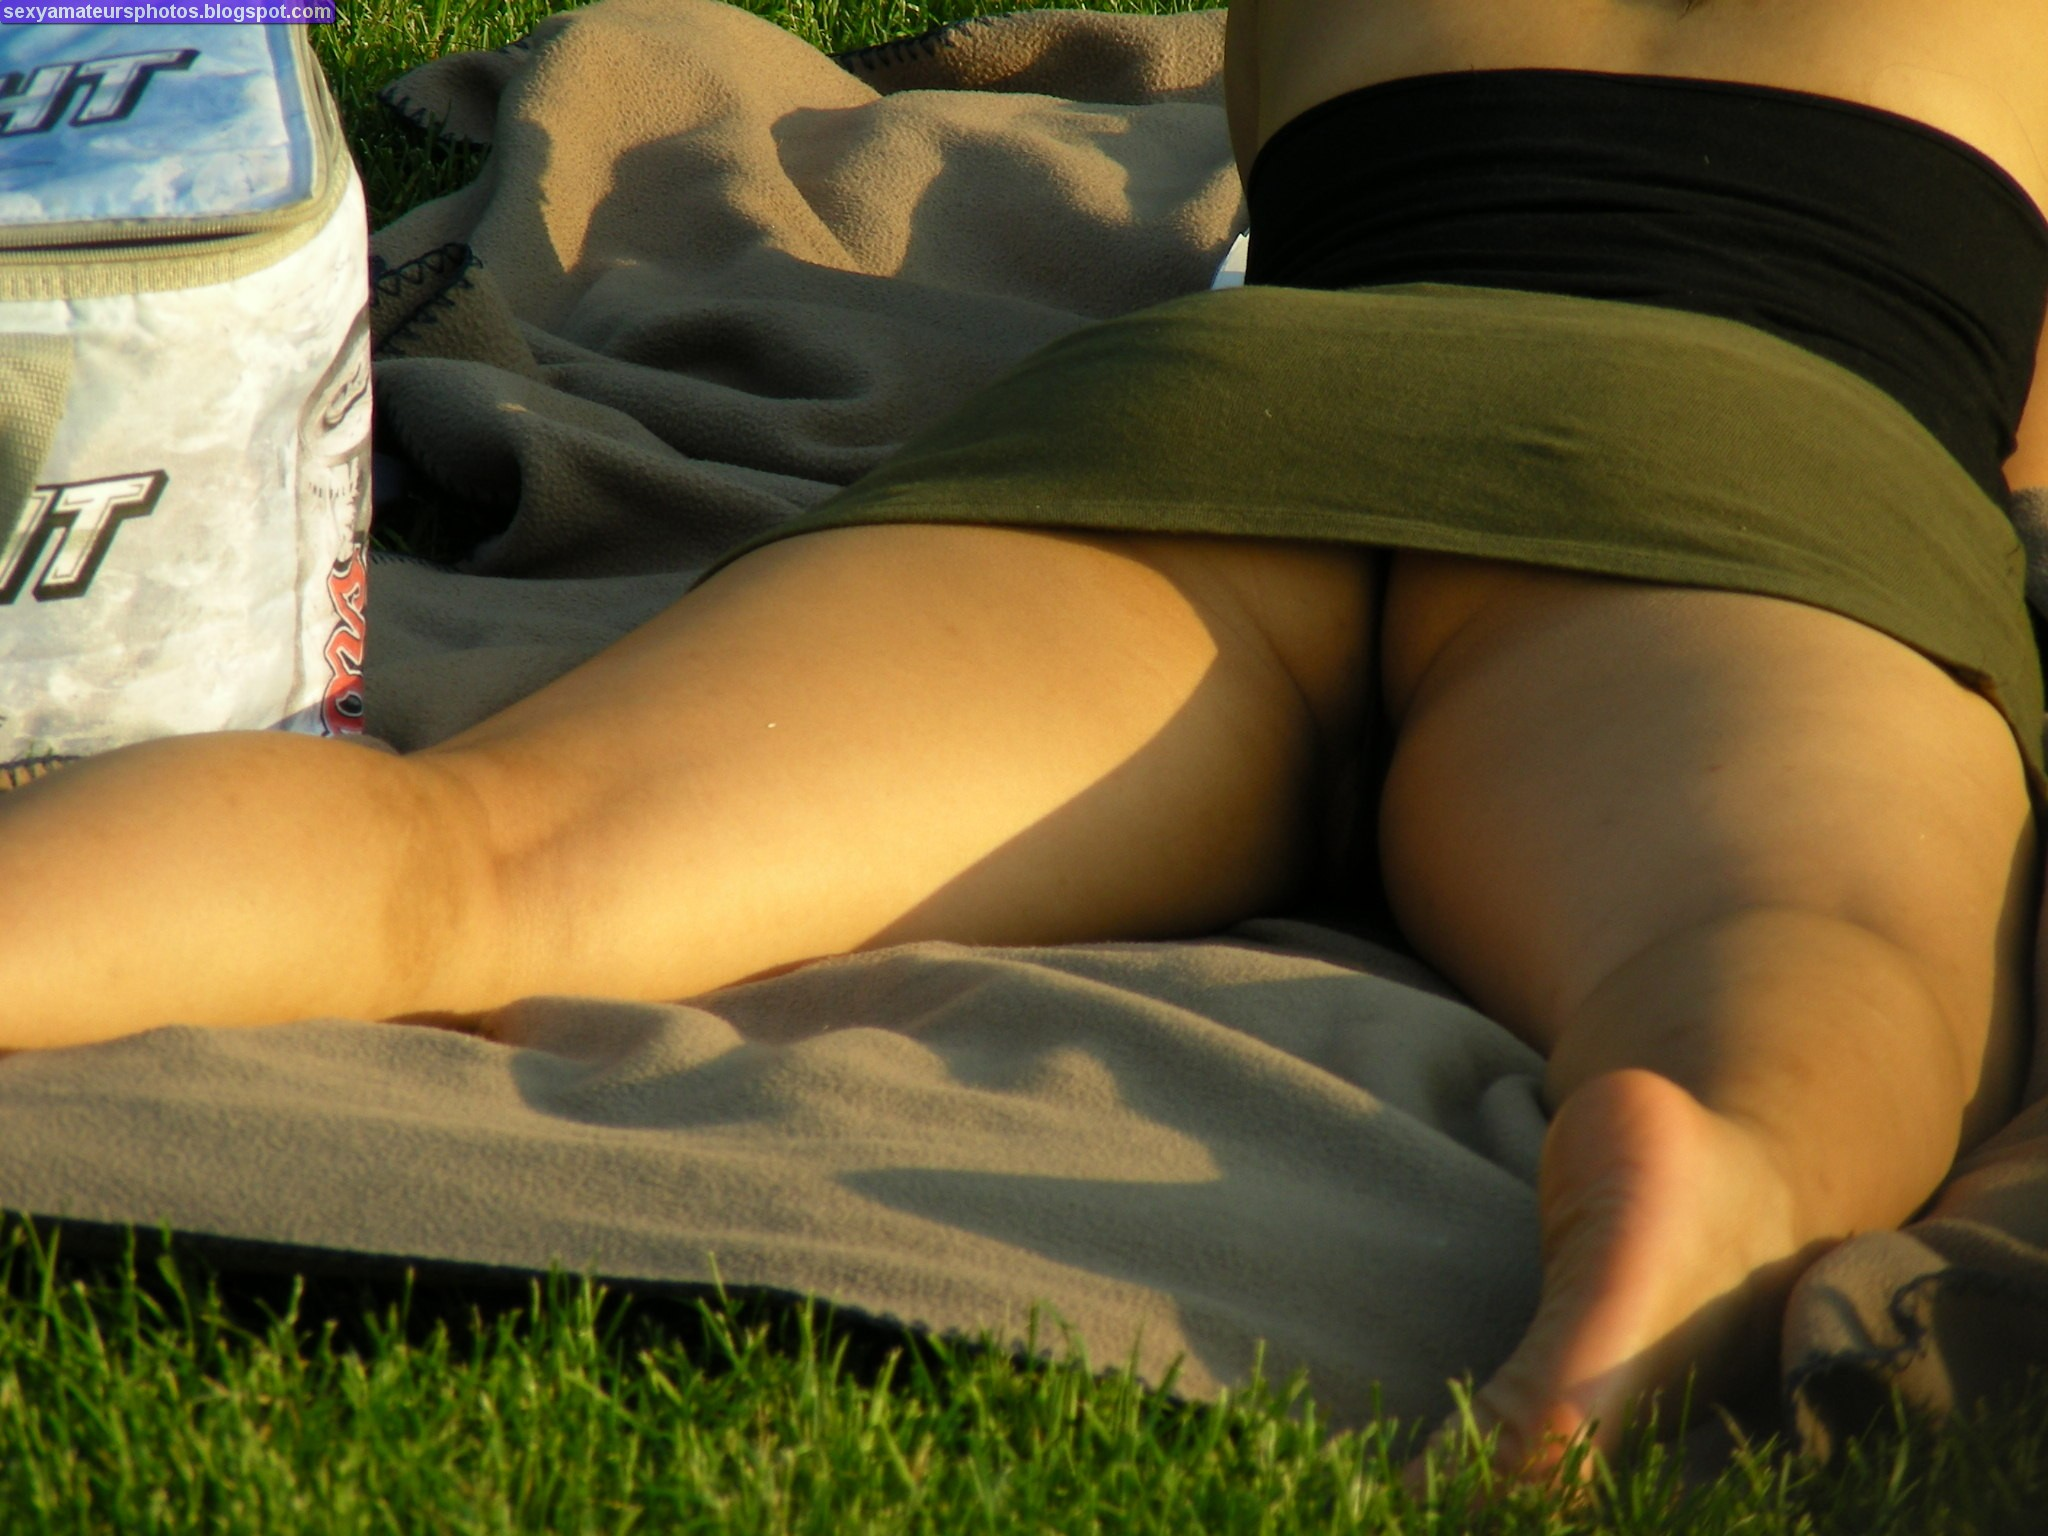 Excellent answer, Park upskirt video have